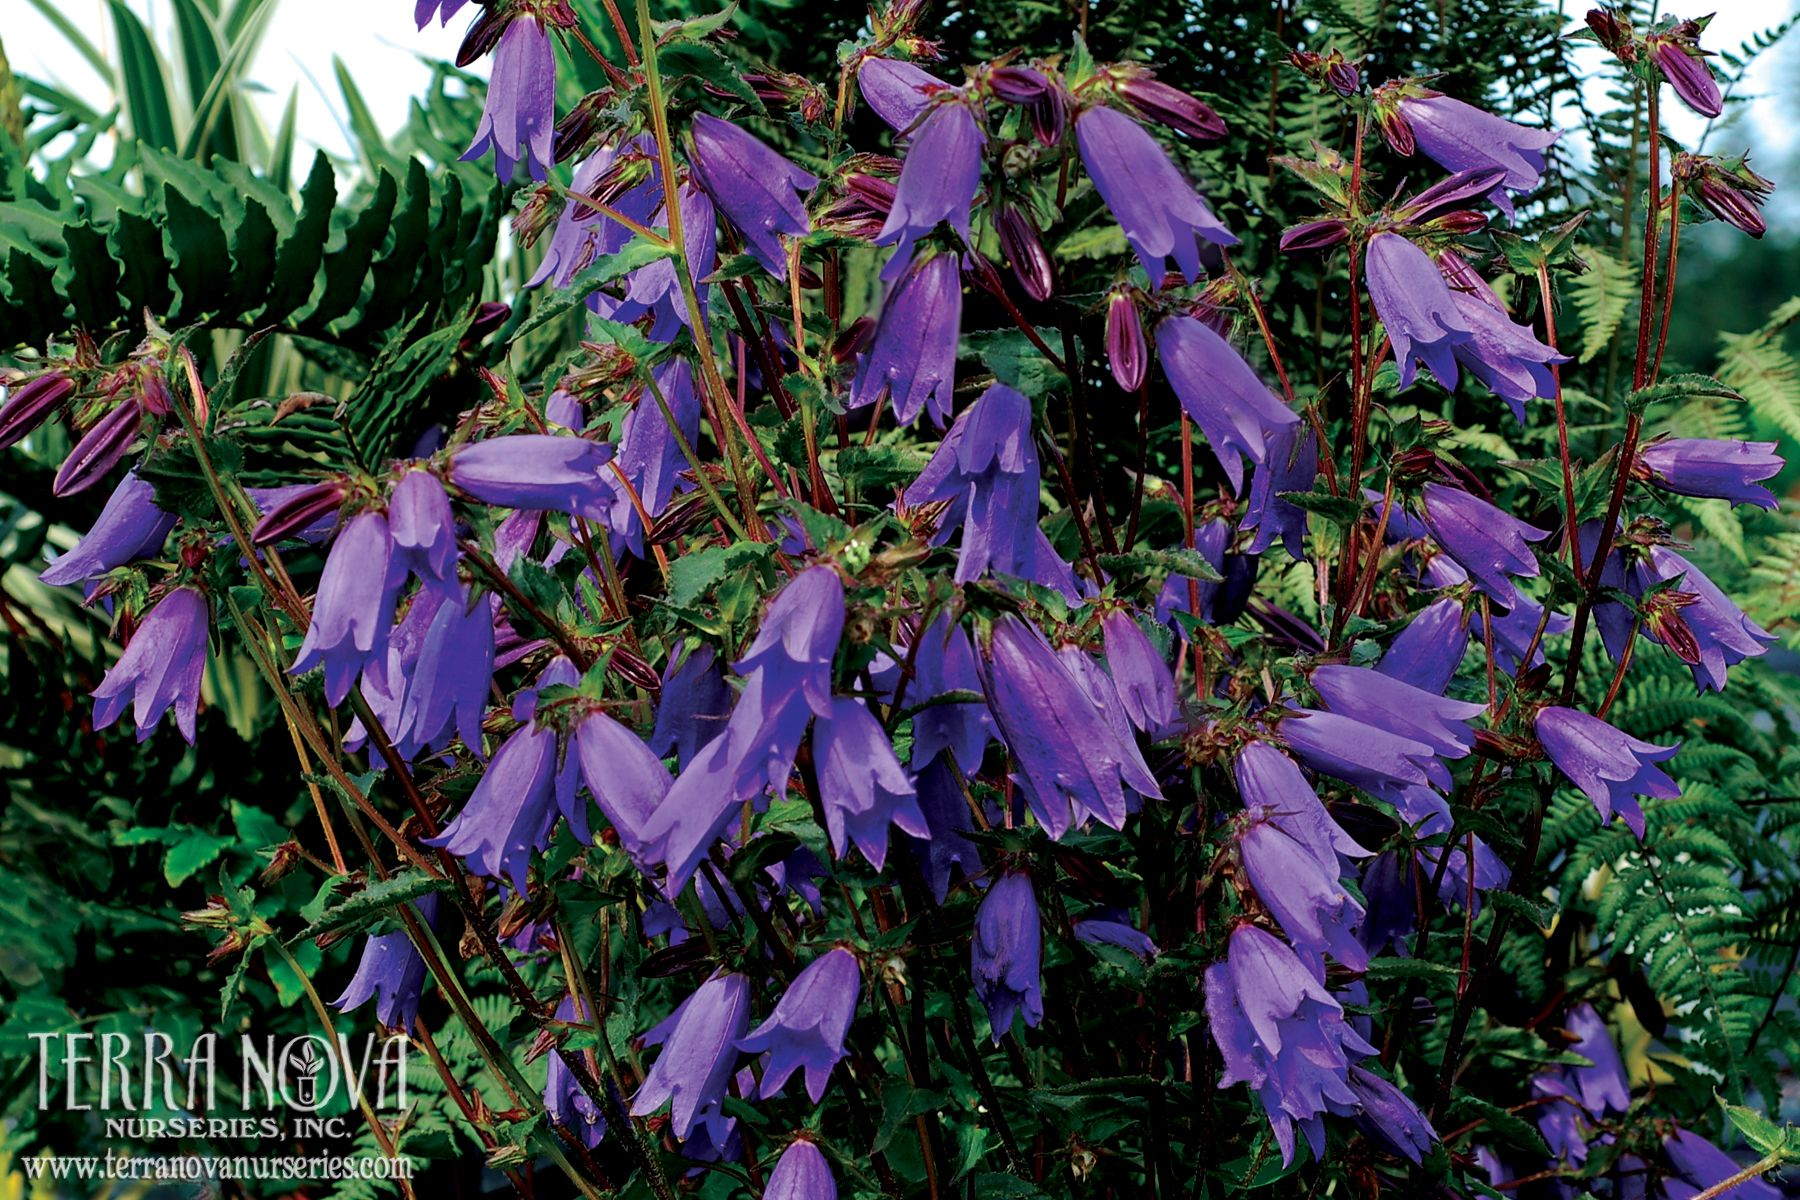 Campanula summertime jazz a summer festival of flowers this campanula summertime jazz a summer festival of flowers this powerhouse blooms all season long compact plant habit is accentuated by blue bells izmirmasajfo Gallery